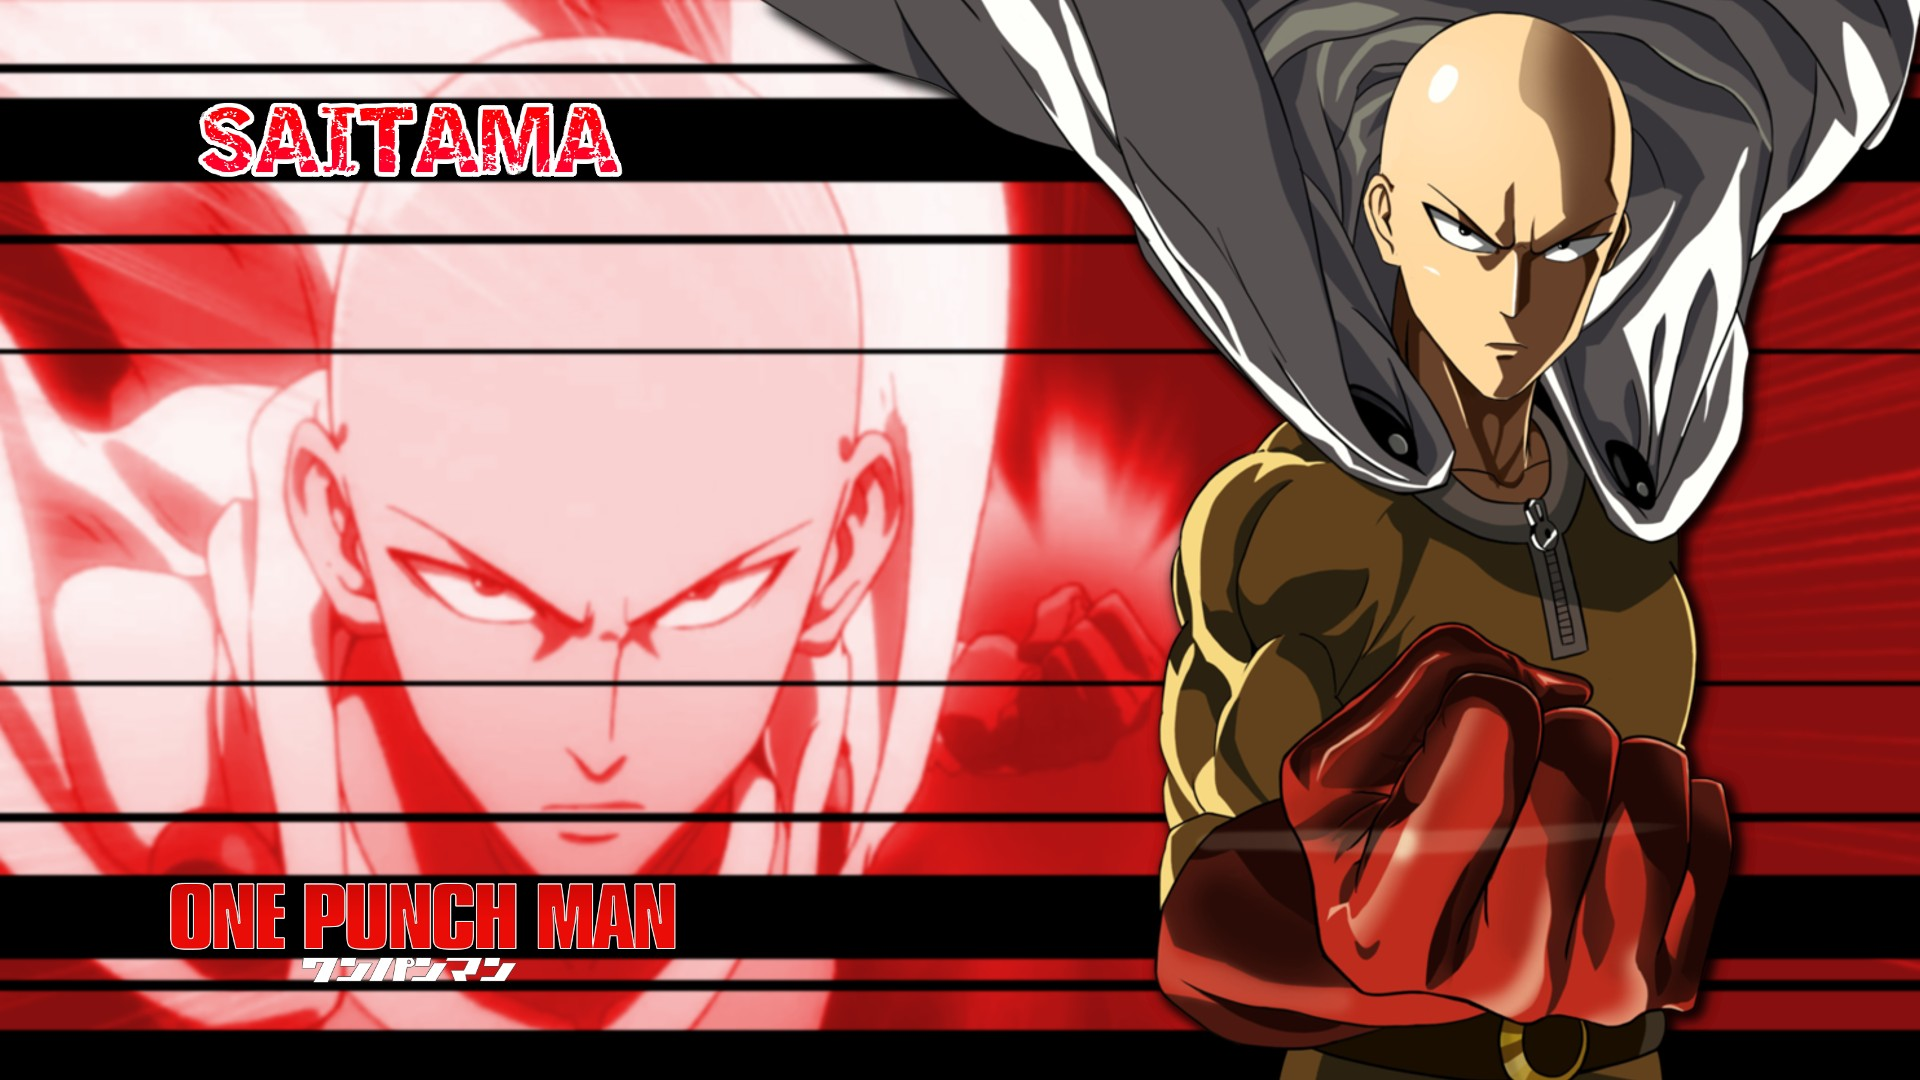 Fantastic Wallpaper Android One Punch Man - 246473-free-one-punch-man-wallpaper-hd-1920x1080-for-android-50  HD_3727      .jpg